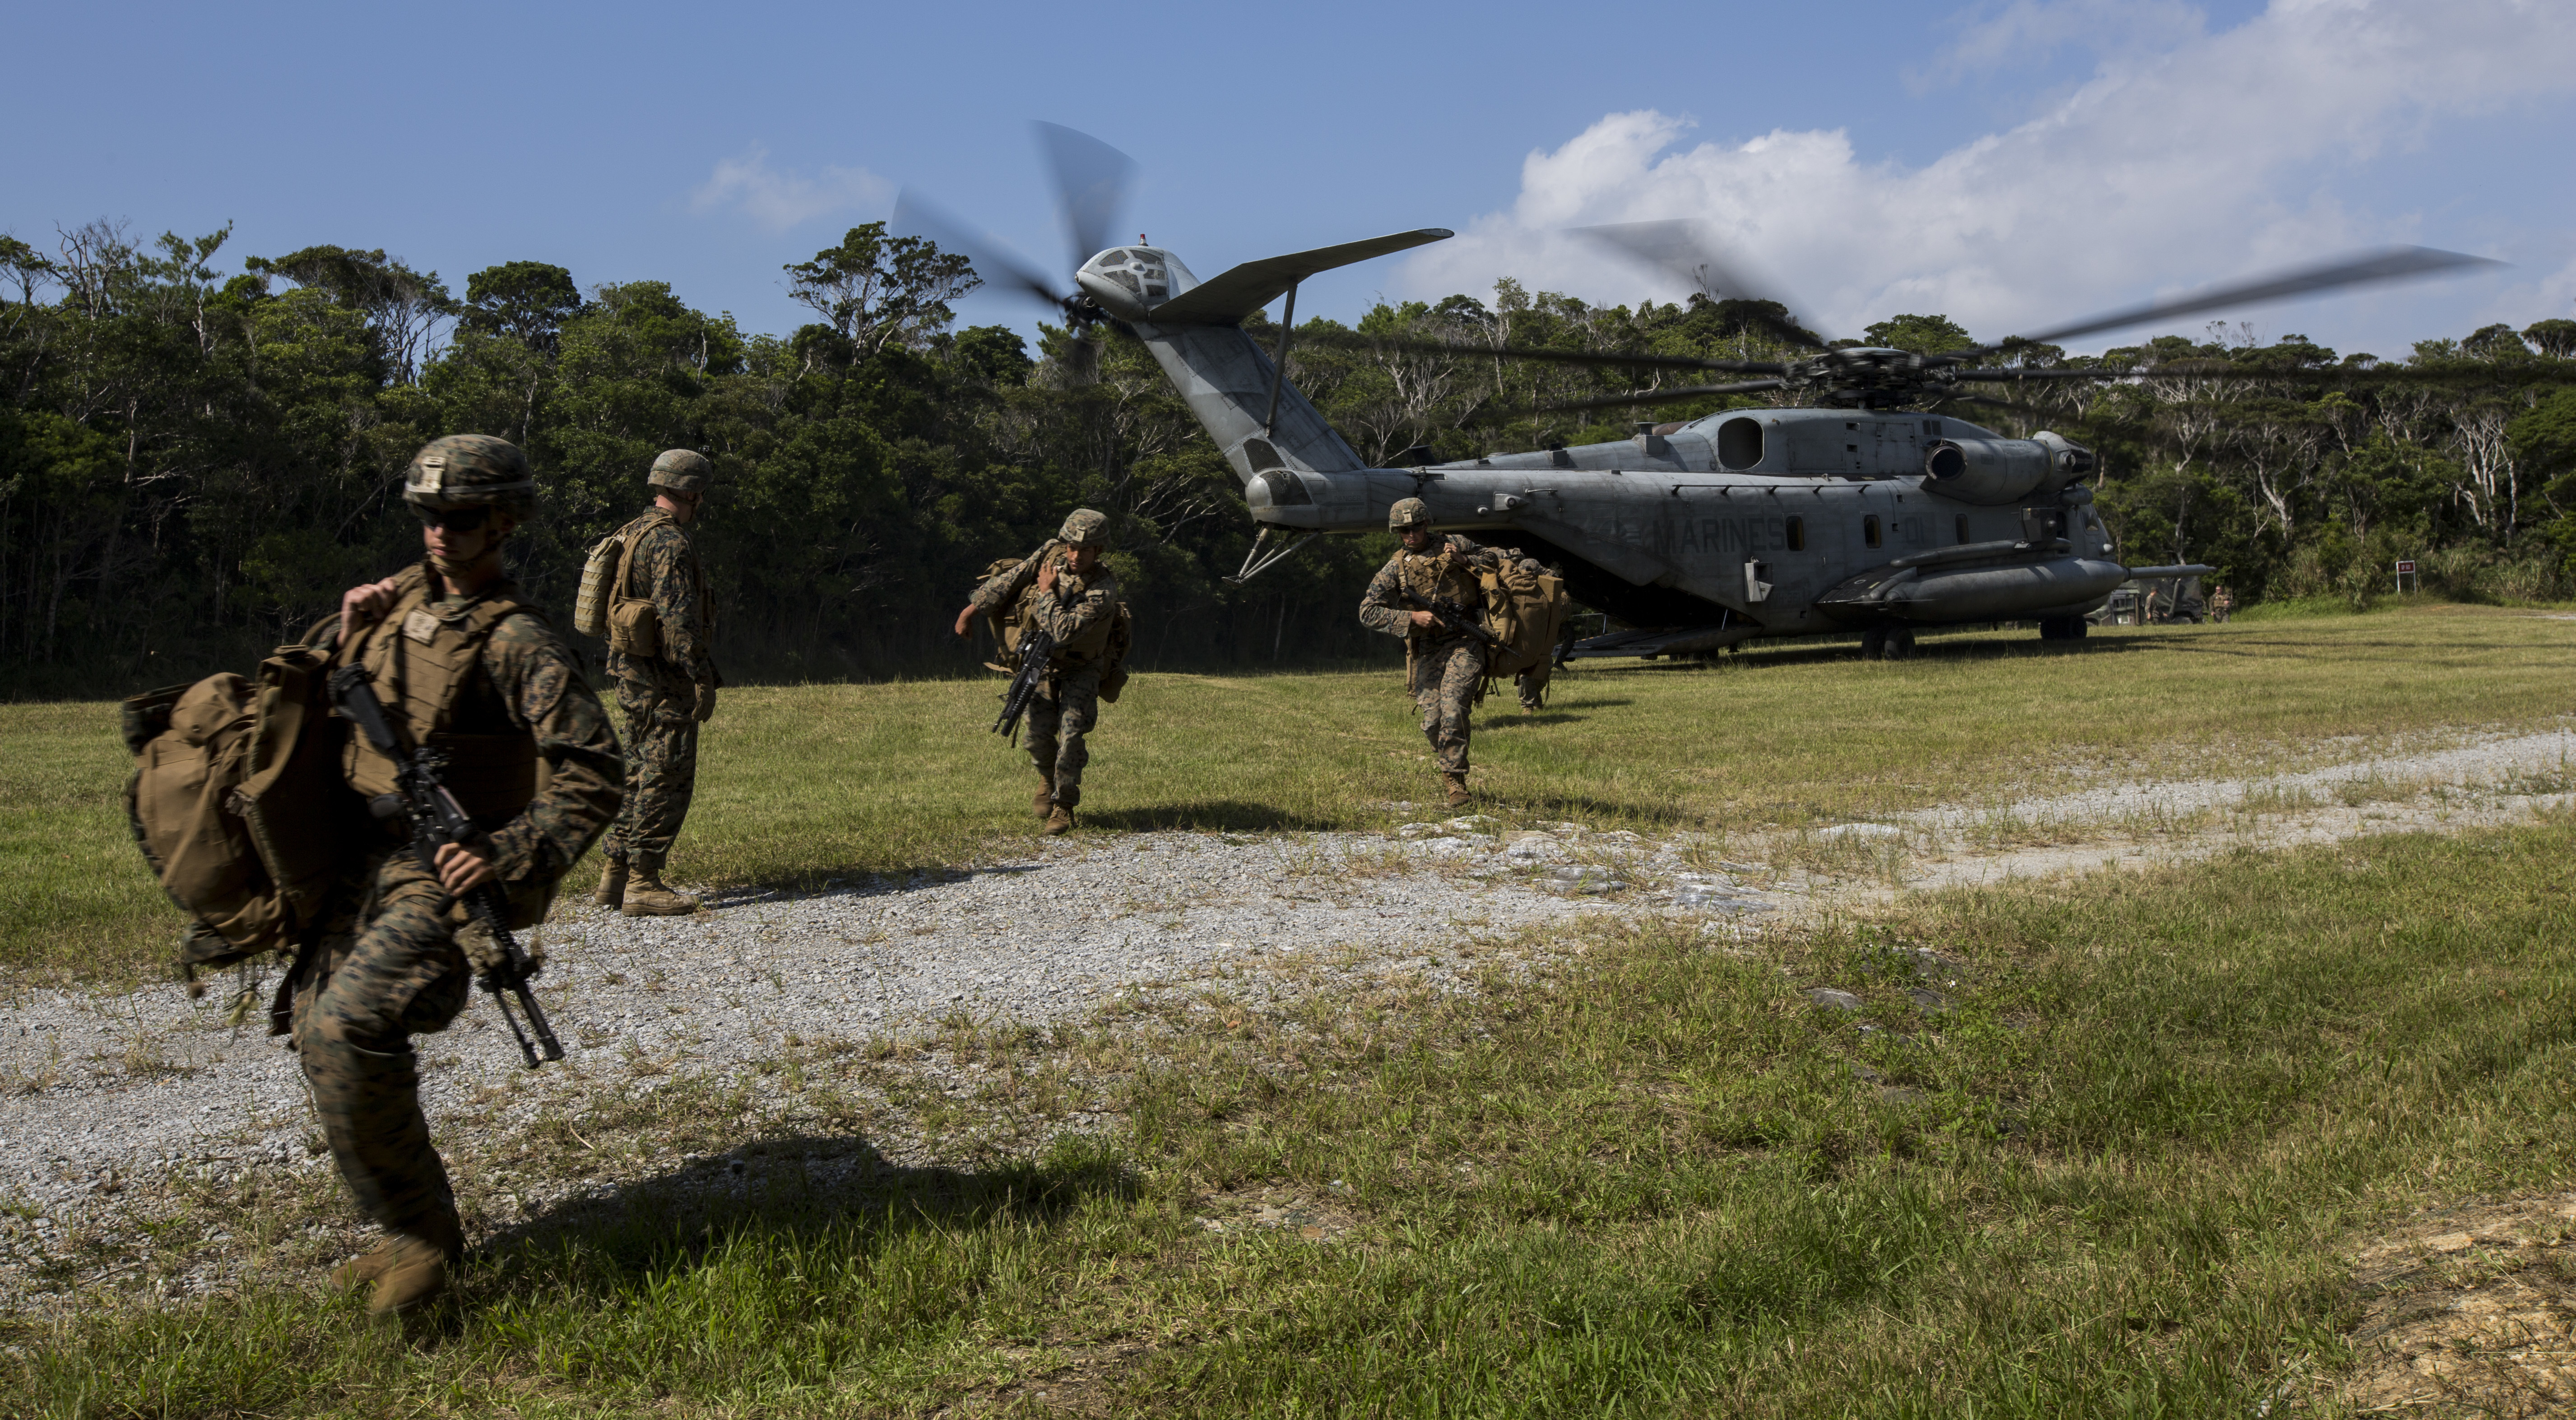 Marines disembark a CH-53E Super Stallion helicopter during Blue Chromite 2017 in Okinawa, Japan, November 2, 2016. Blue Chromite is a U.S.–only exercise which strengthens the Navy-Marine Corps expeditionary, amphibious rapid-response capabilities based in Okinawa and the greater Indo-Asia-Pacific region. US Marine Corps photo.